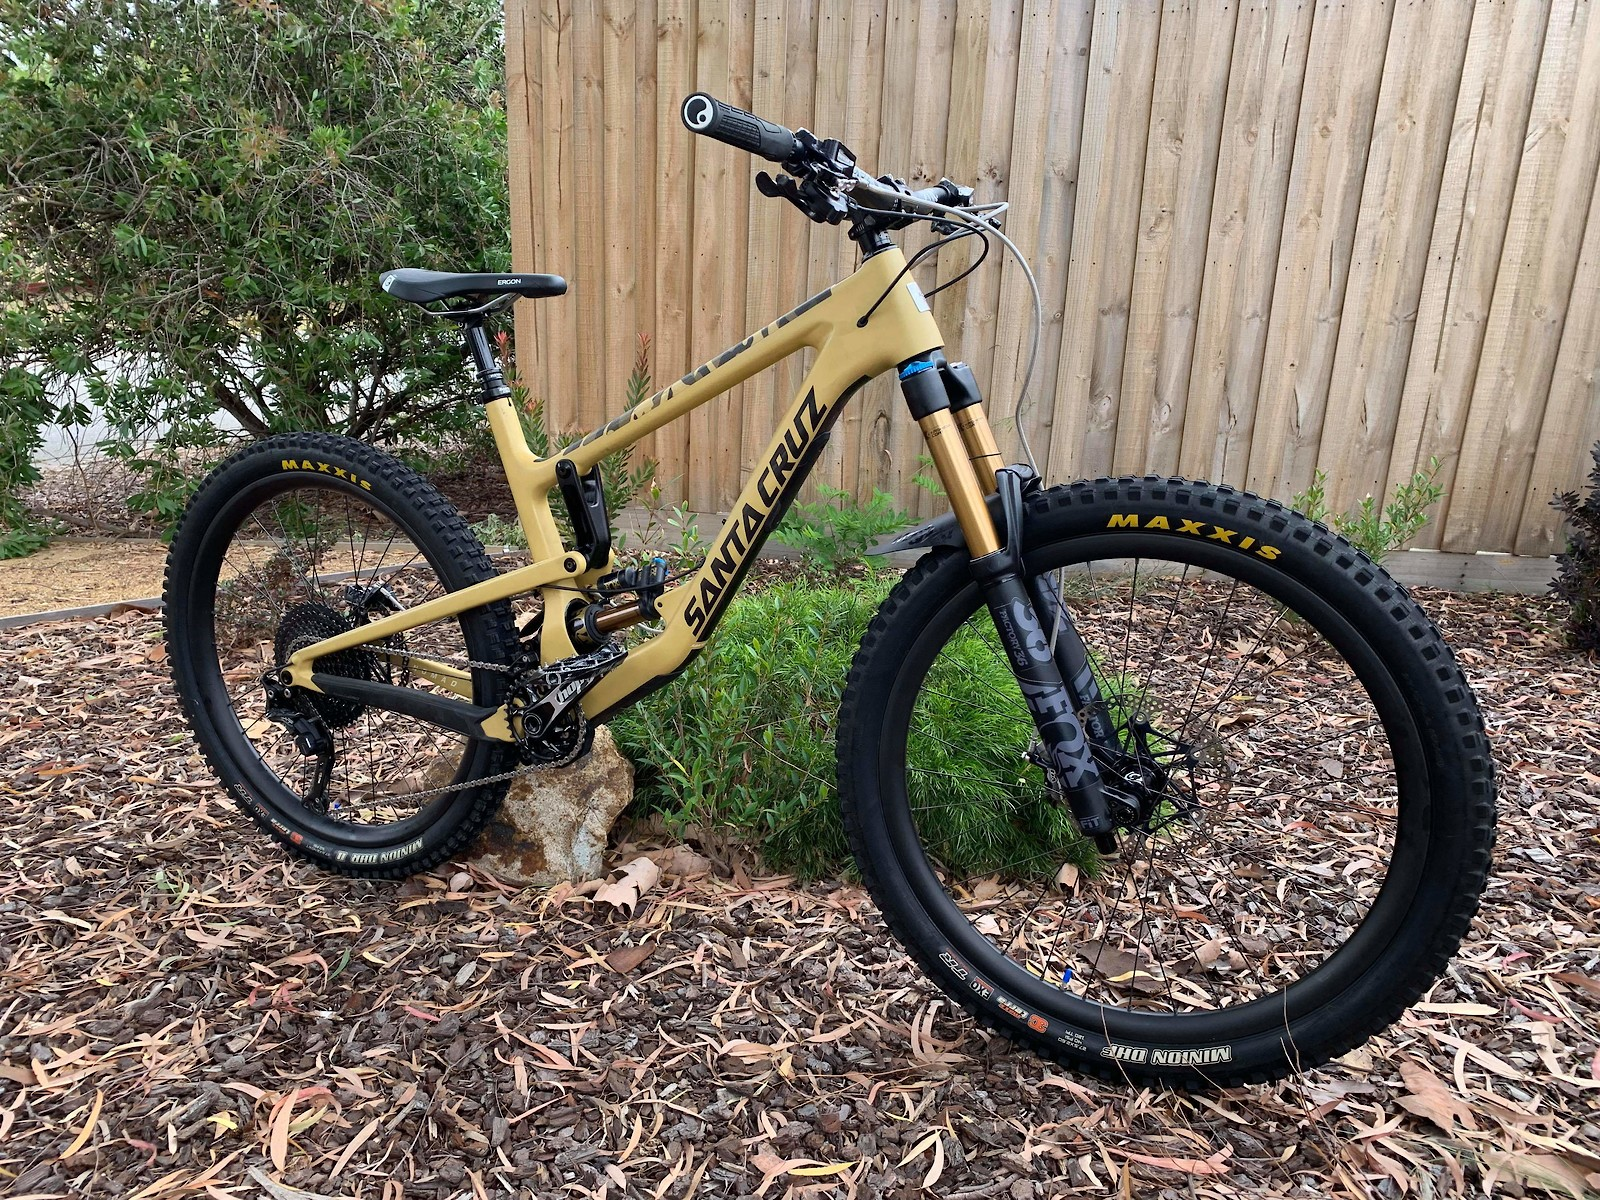 Desert Storm Nomad V4 The Drizzle S Bike Check Vital Mtb